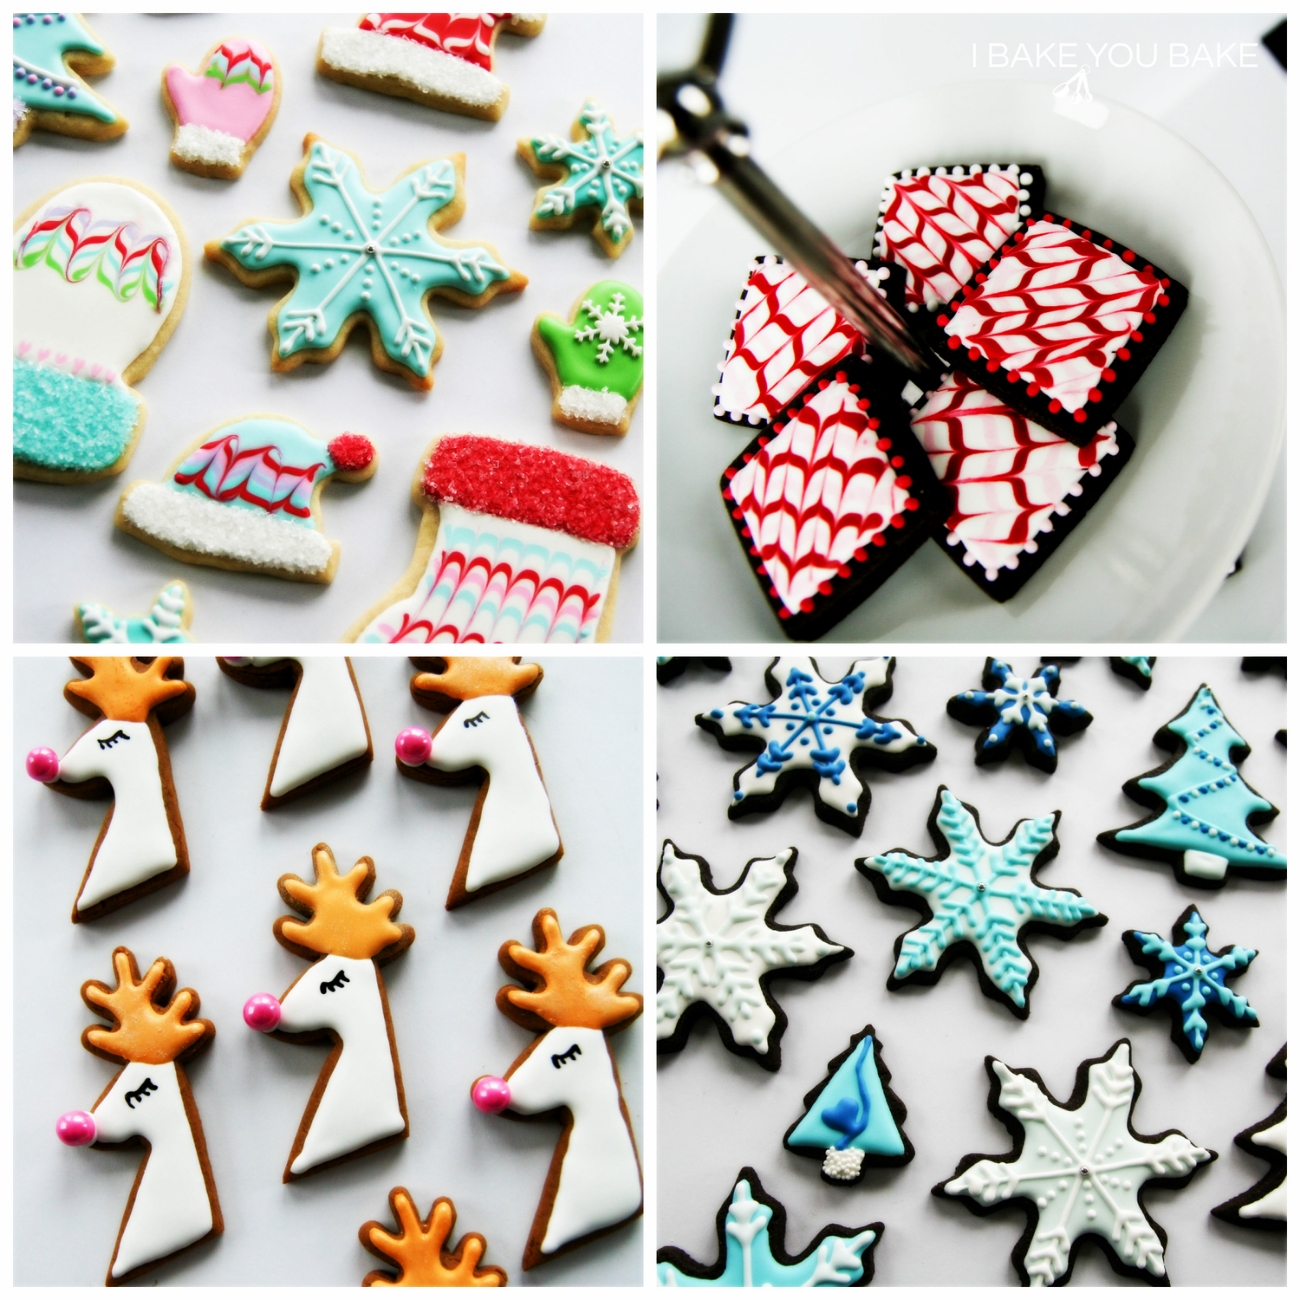 The only royal icing recipe I ever use